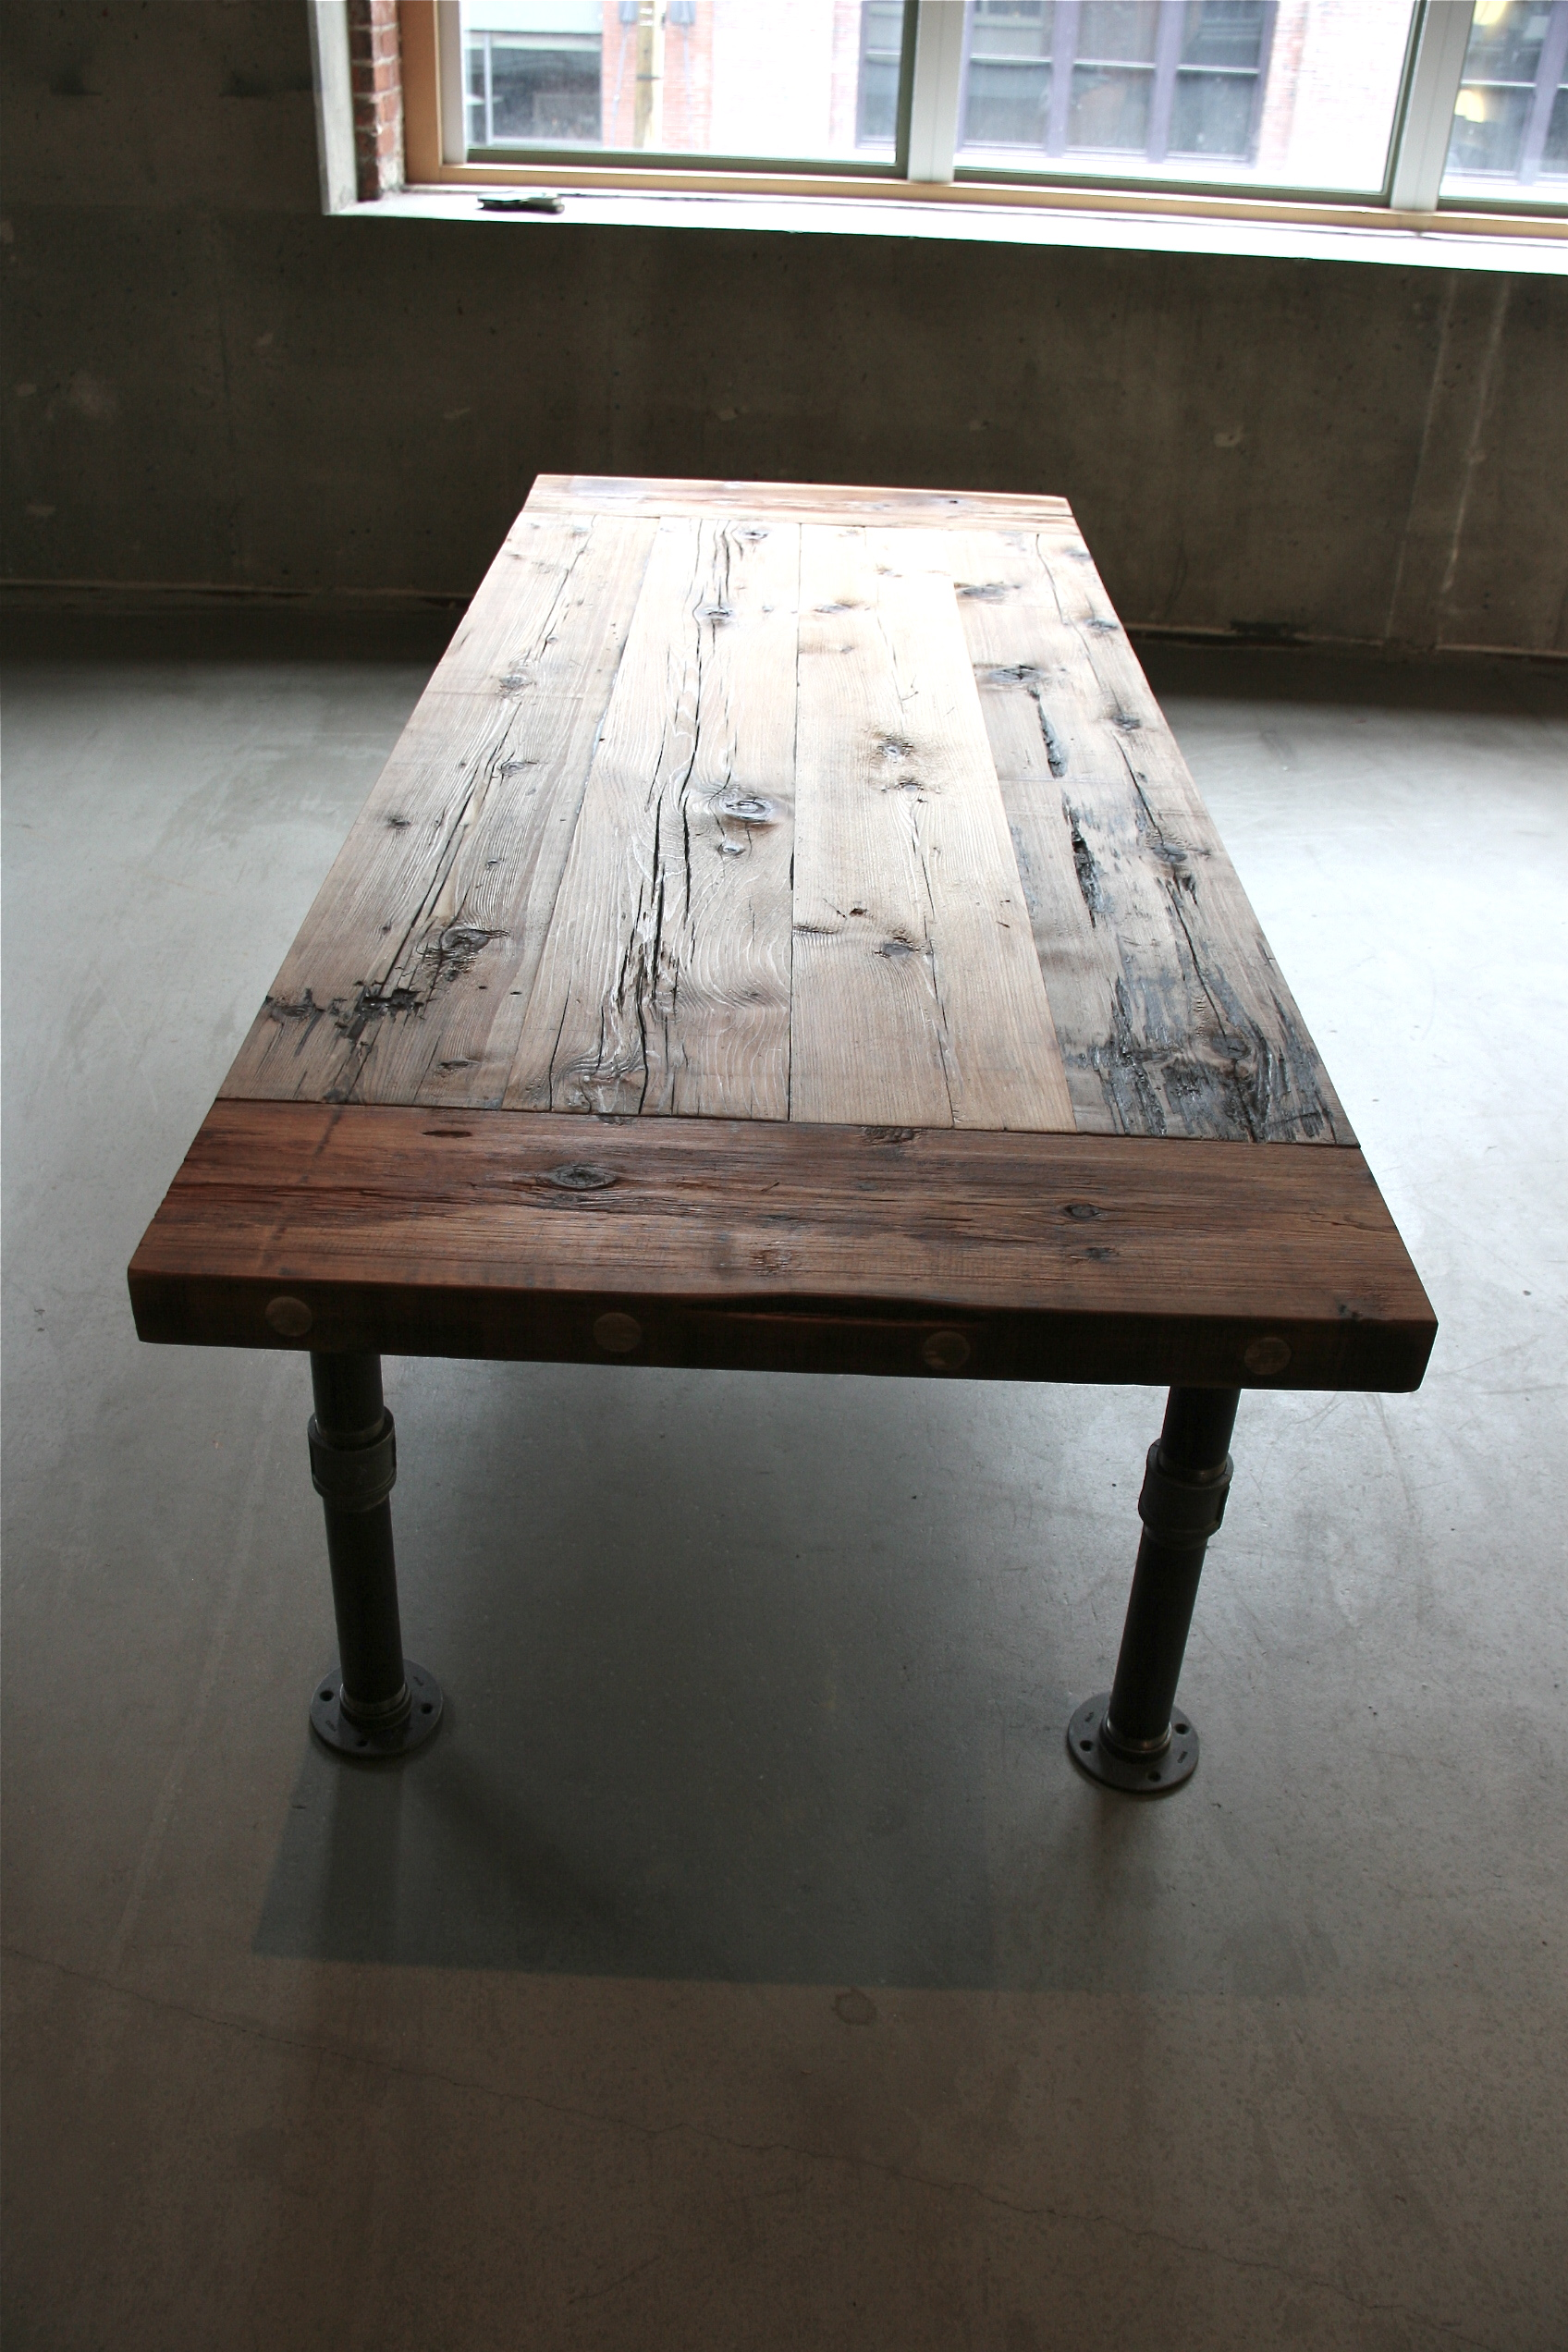 table front.jpg